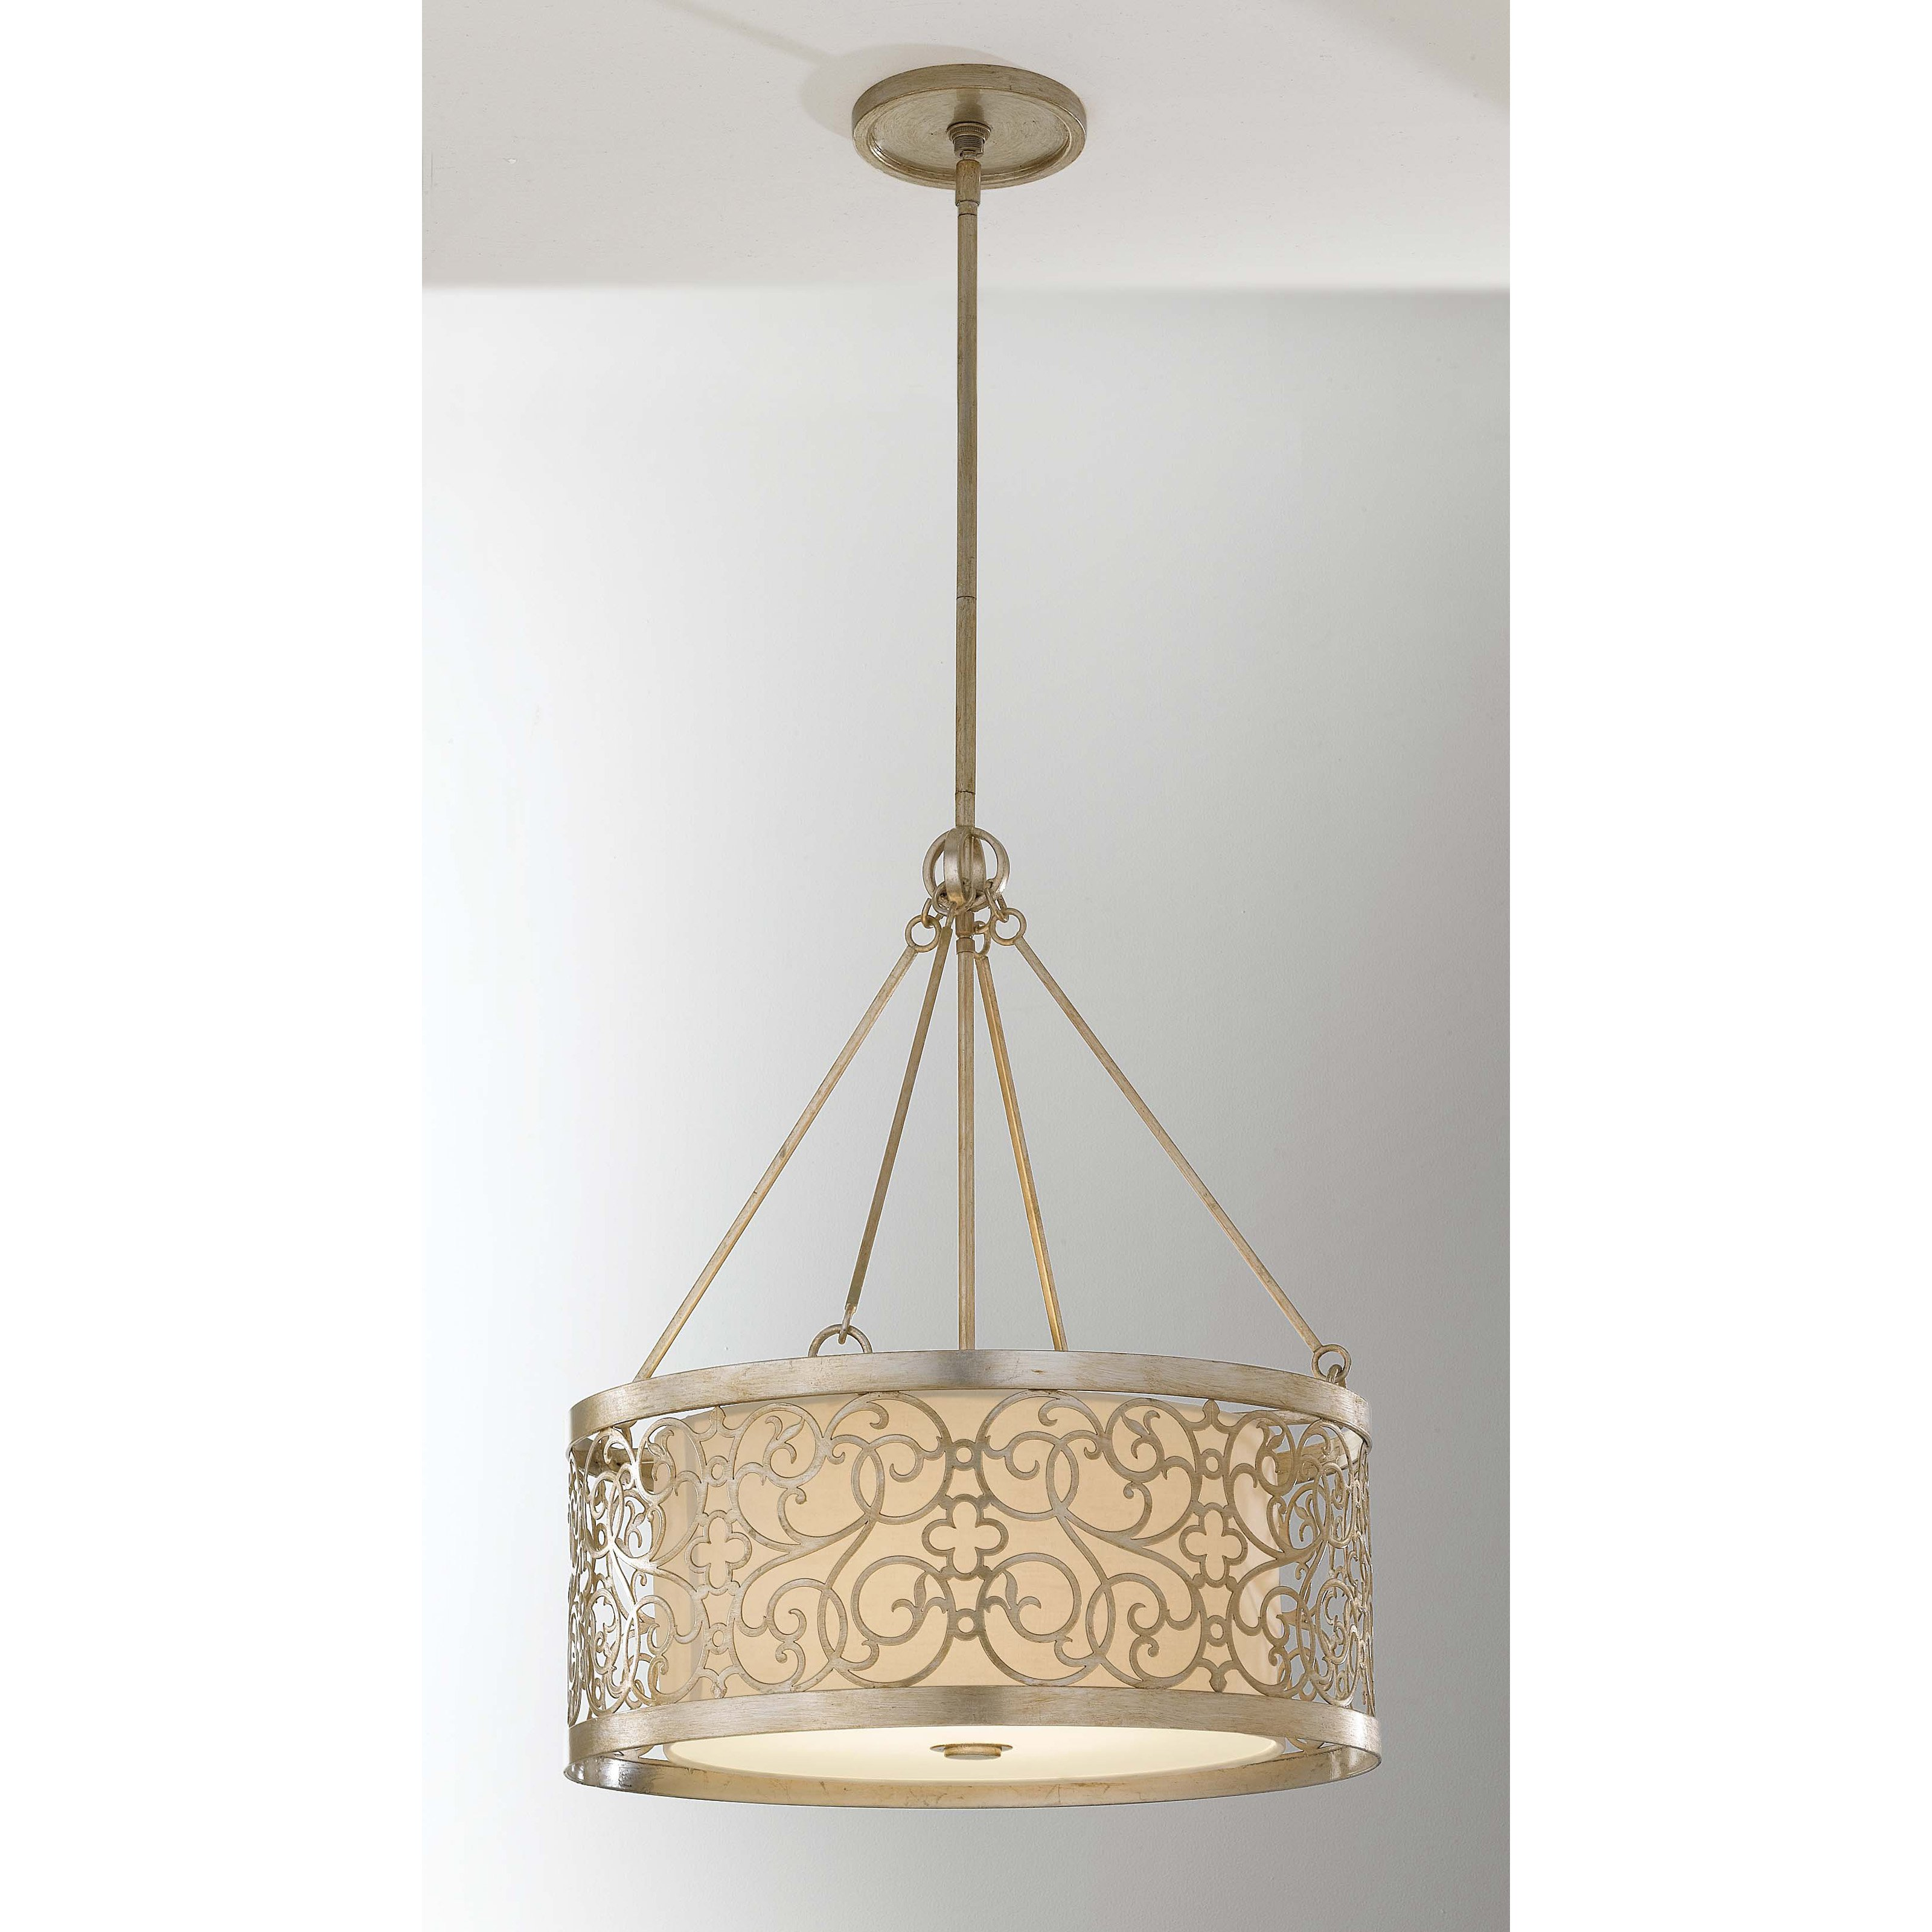 Feiss Arabesque F2537   4SLP Chandelier 23 diam. in. Silver Leaf Patina by Murray Feiss